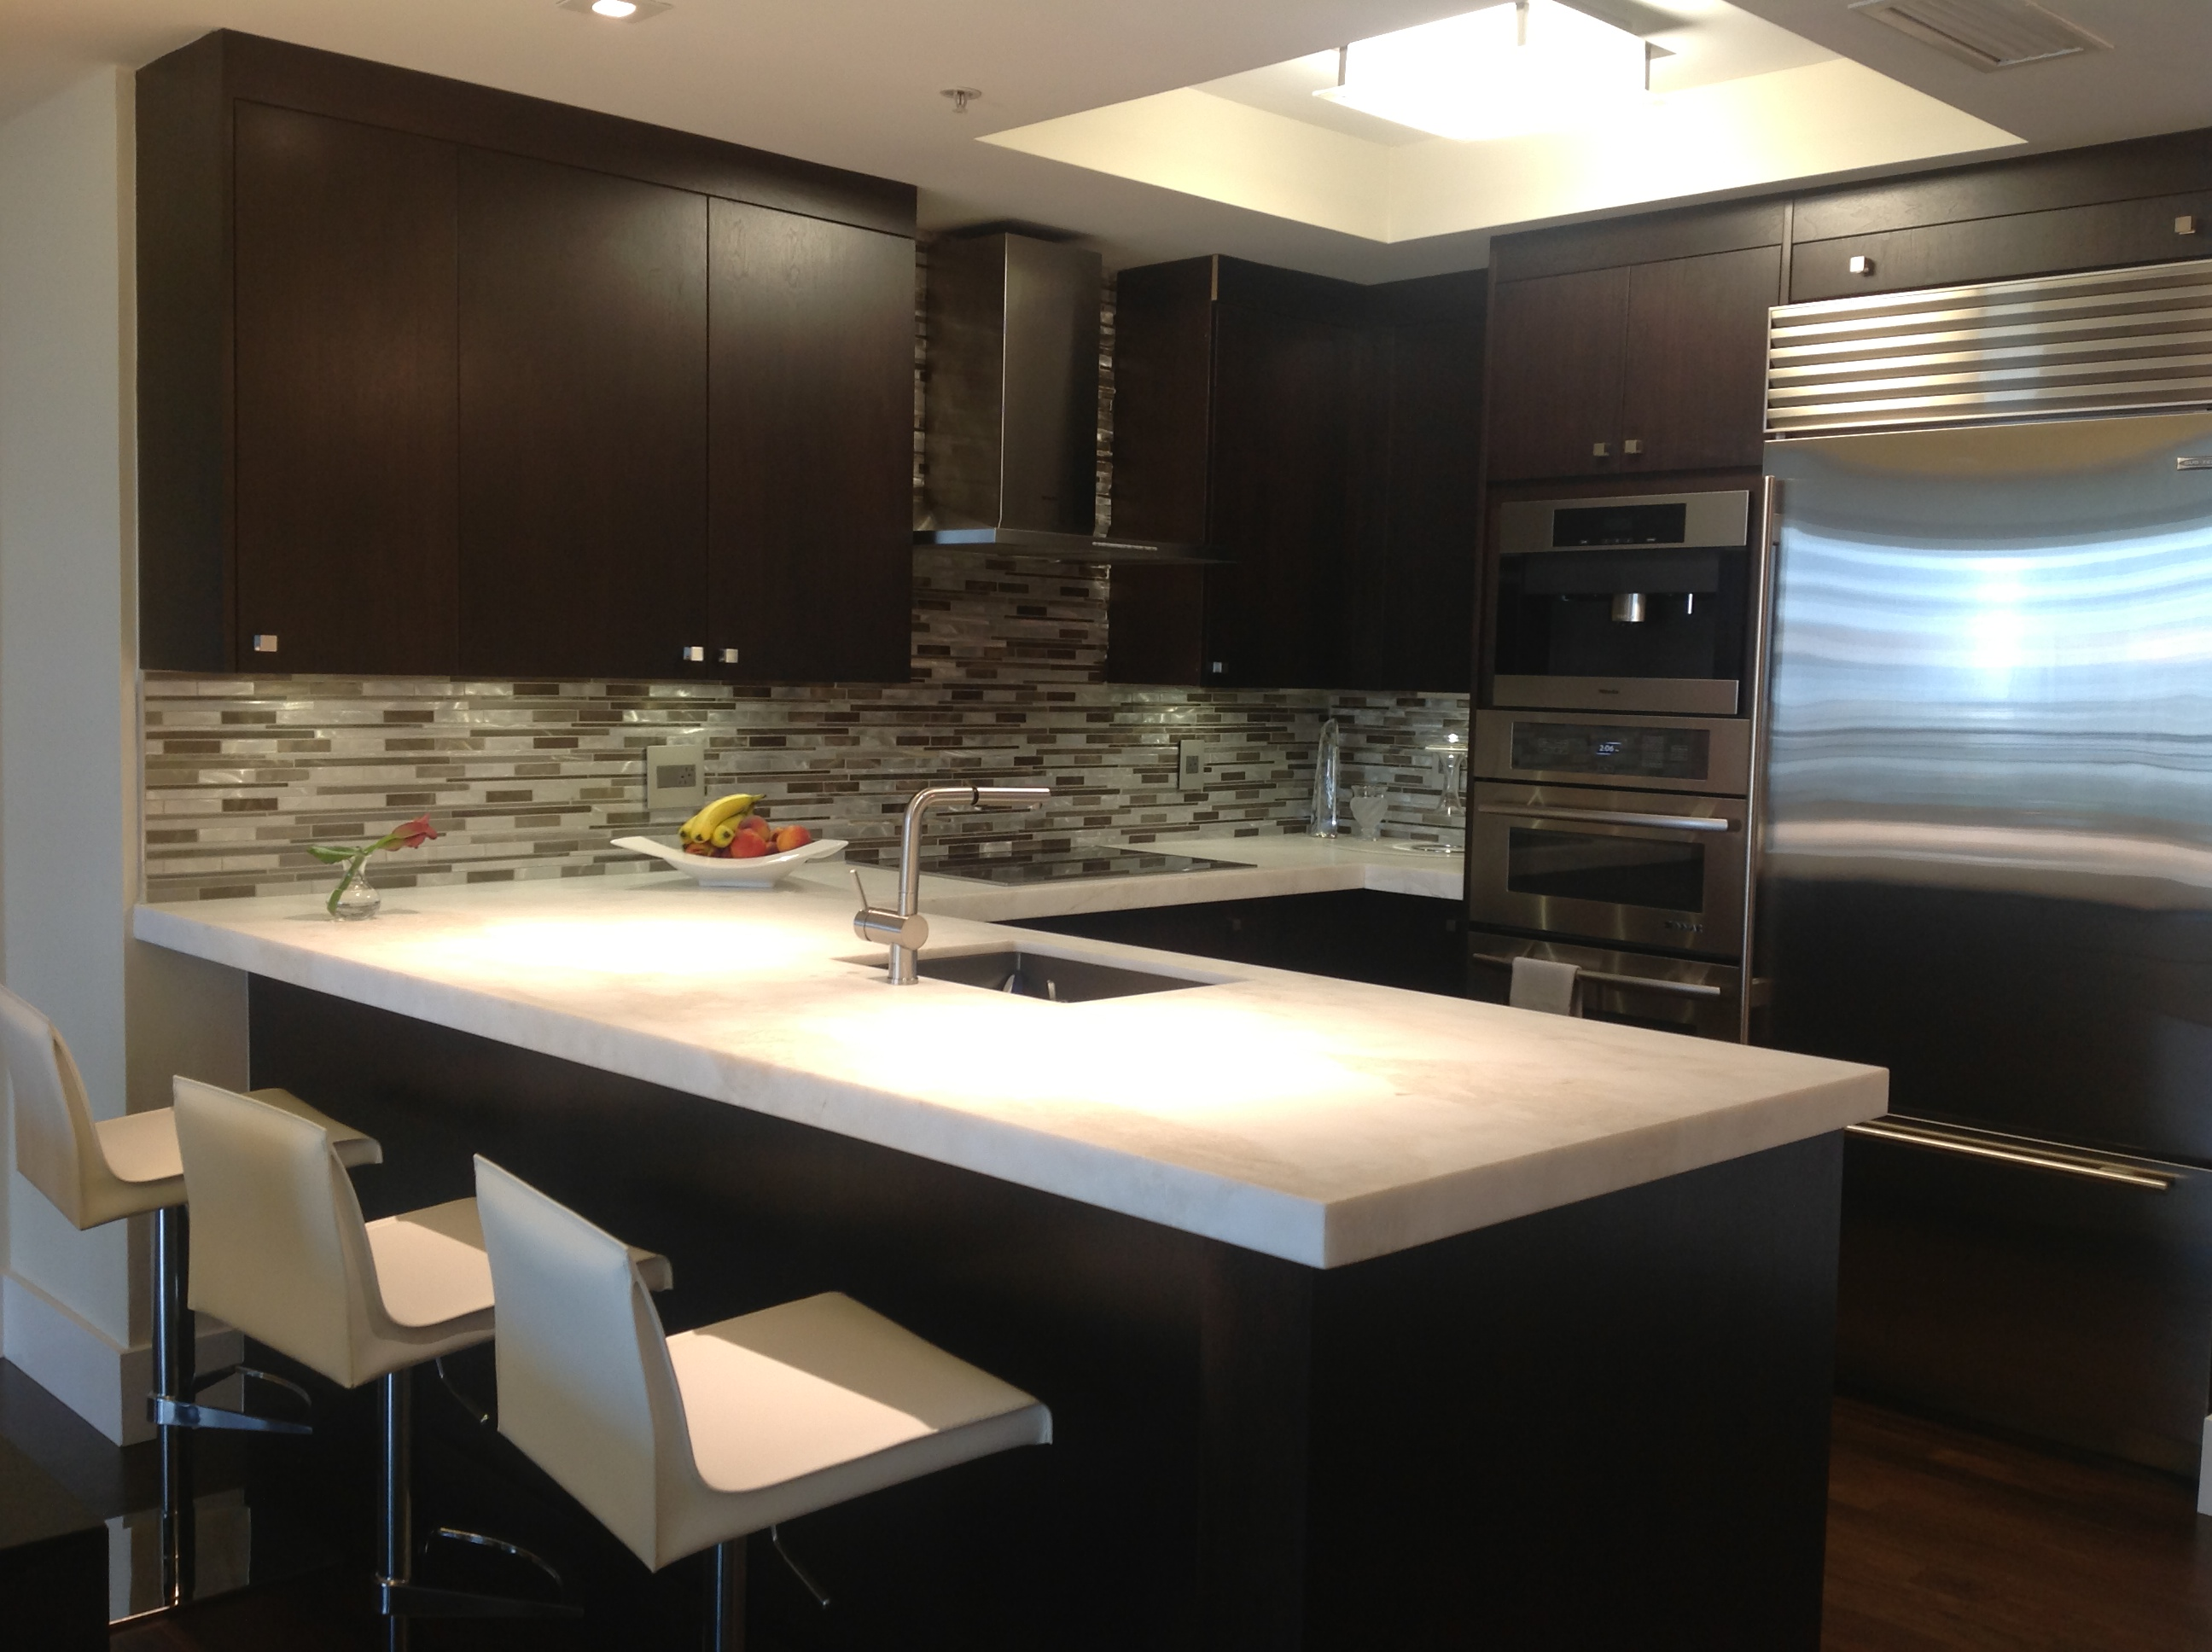 Charmant JandJ Custom Kitchen Cabinets Company | Luxurious Kitchen